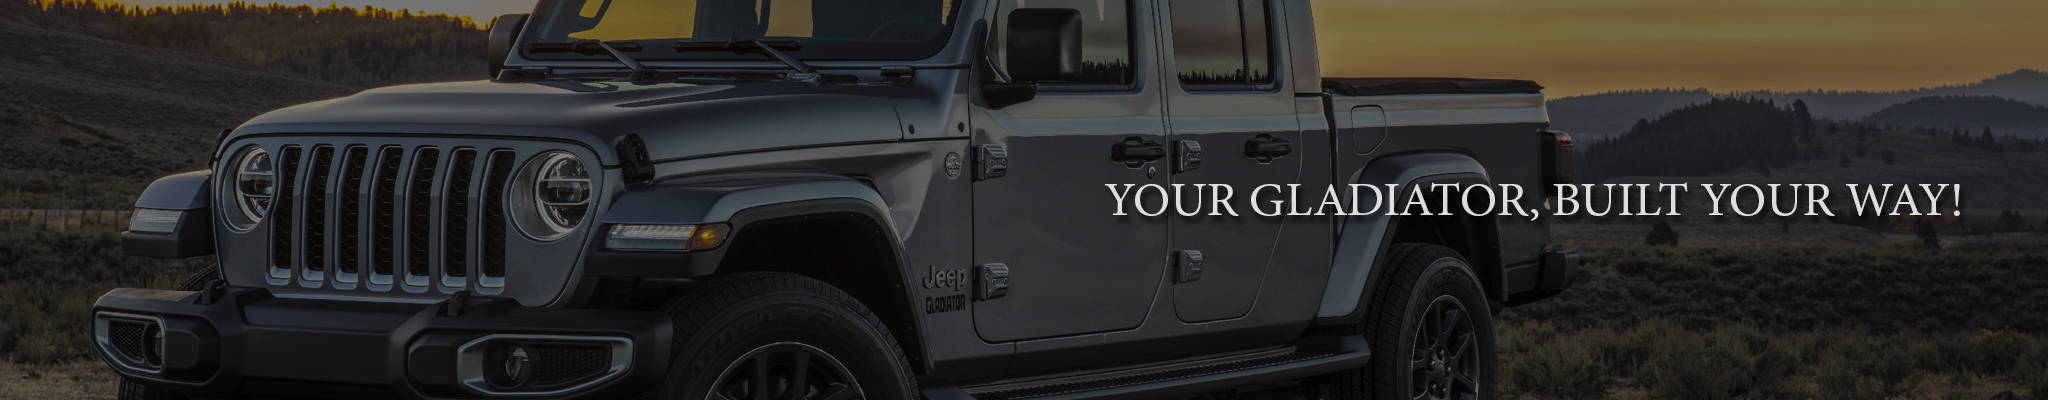 3C Truck Conversions Your JEEP JT Gladiator Truck Built Your Way! Customize your Build Here.